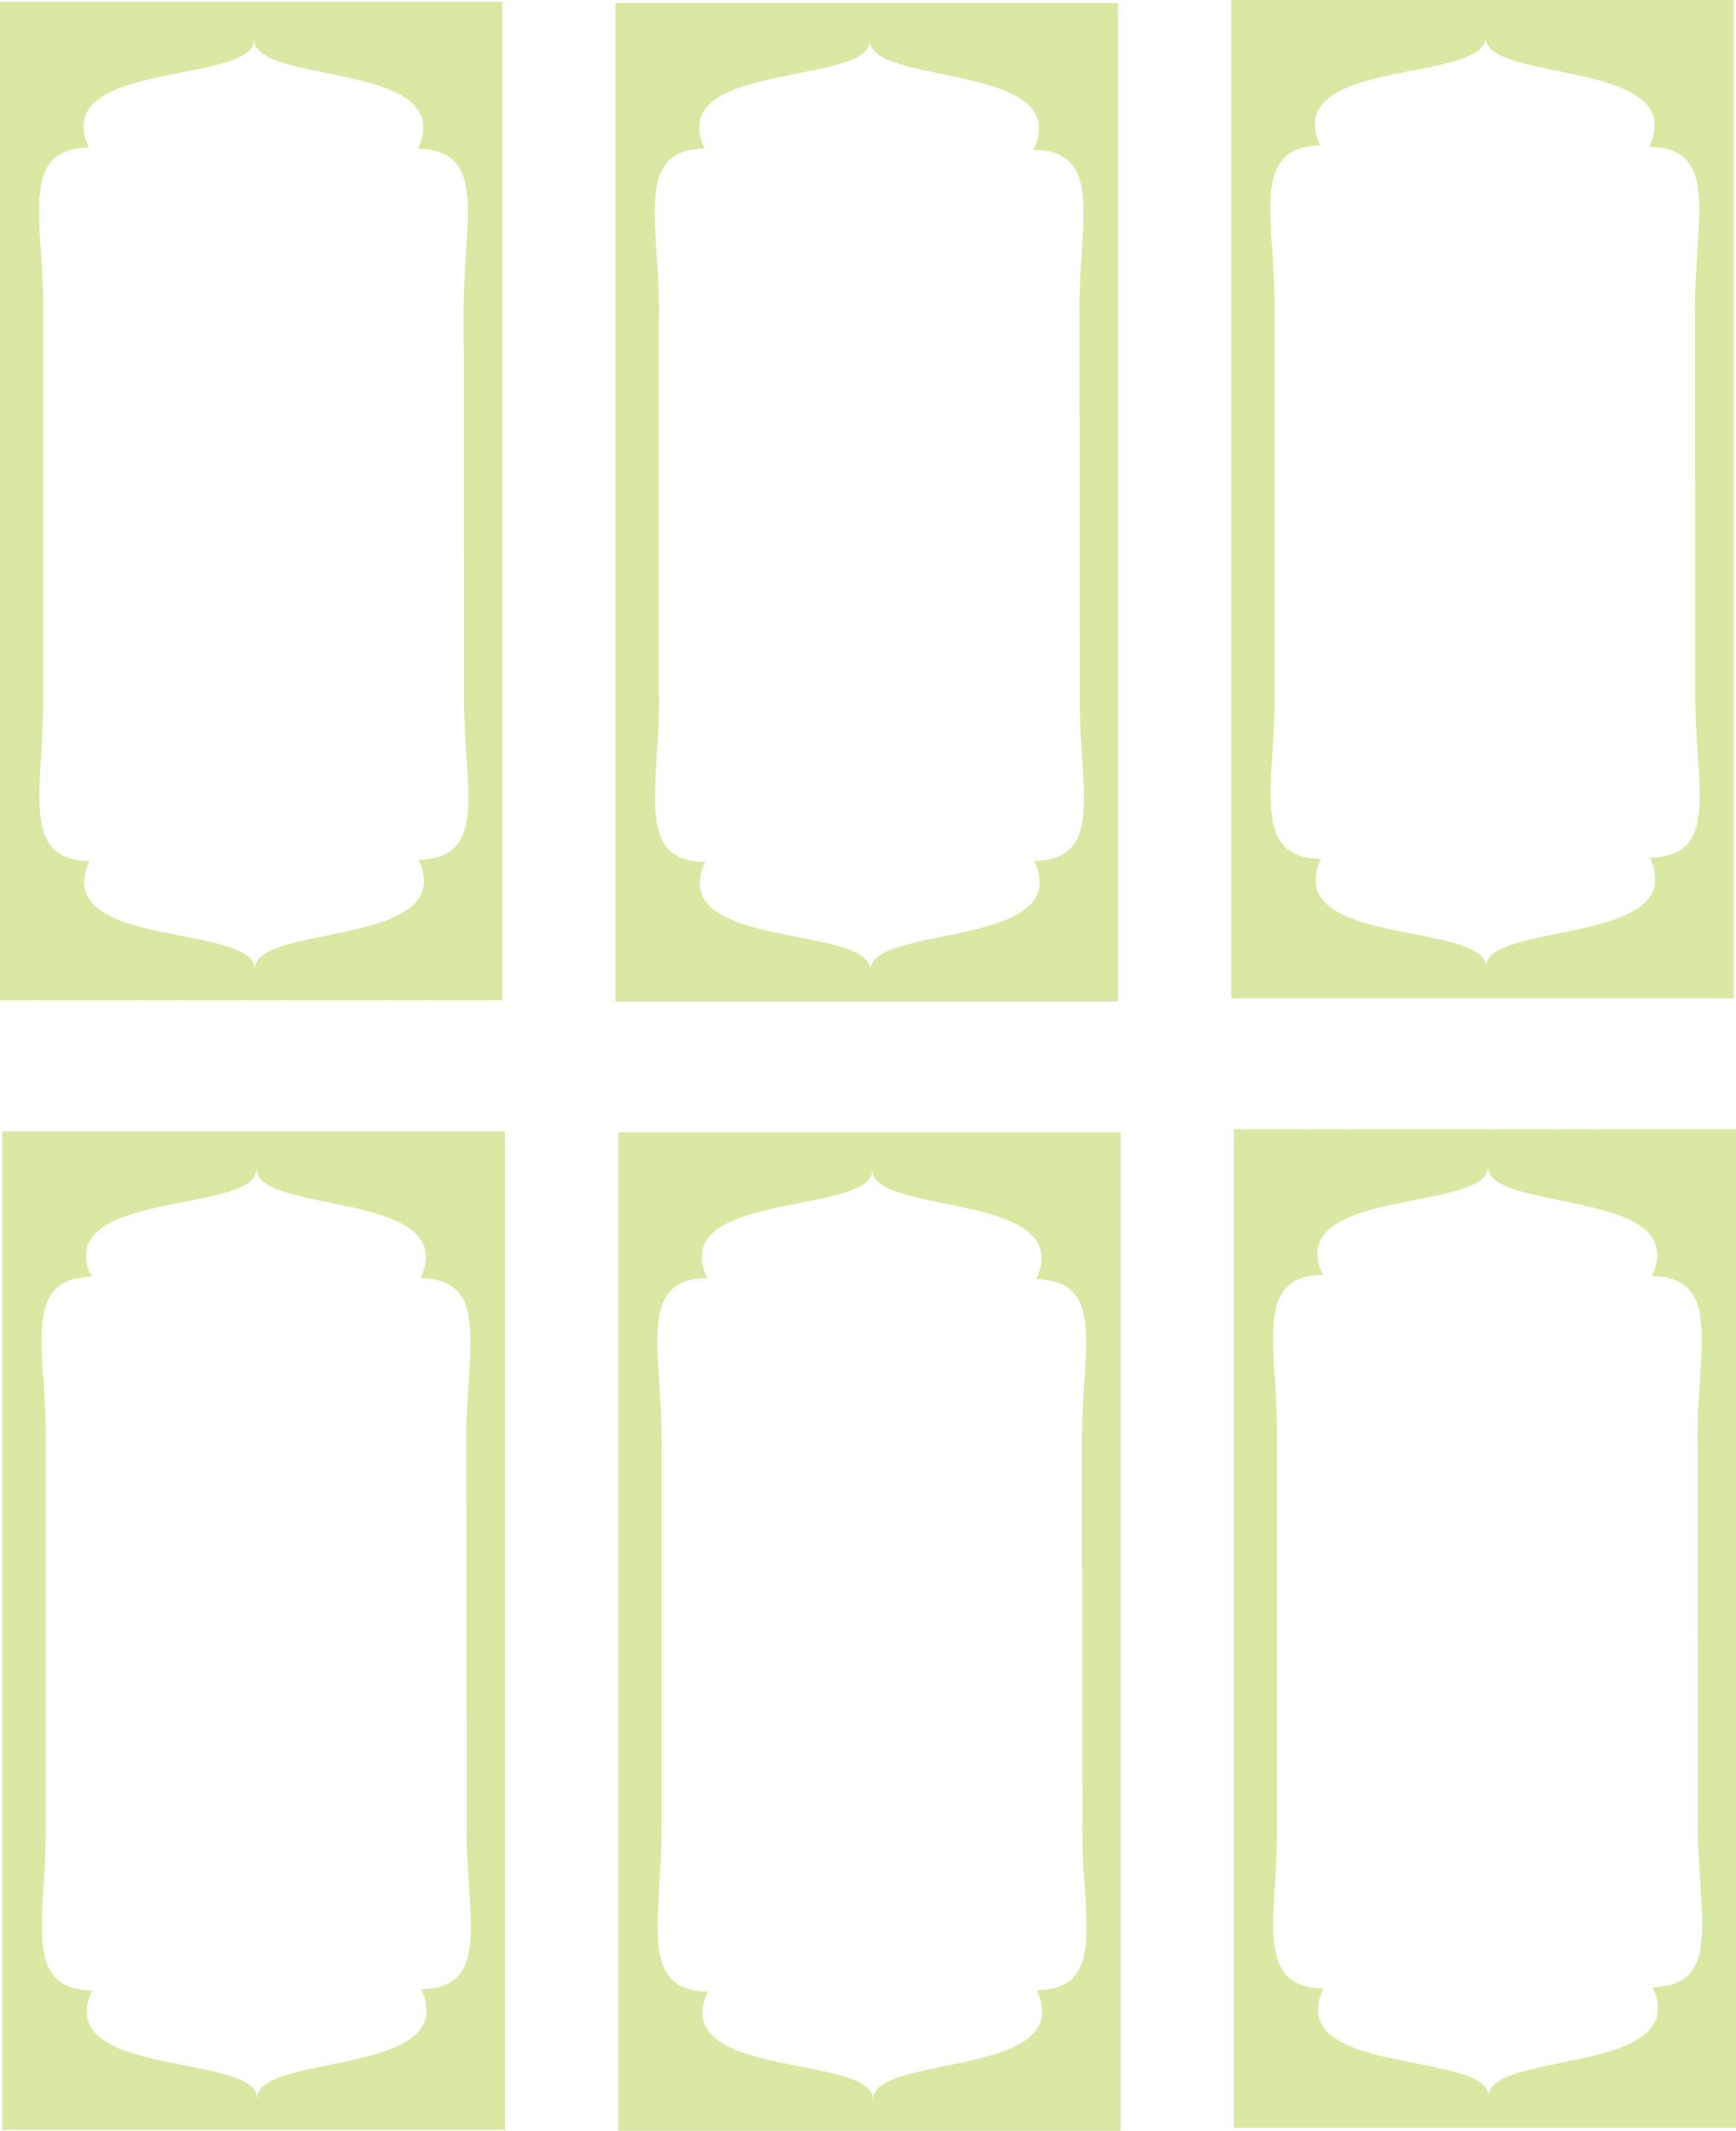 008 Unbelievable Addres Label Template Free Download Photo  Downloads Avery PsdFull